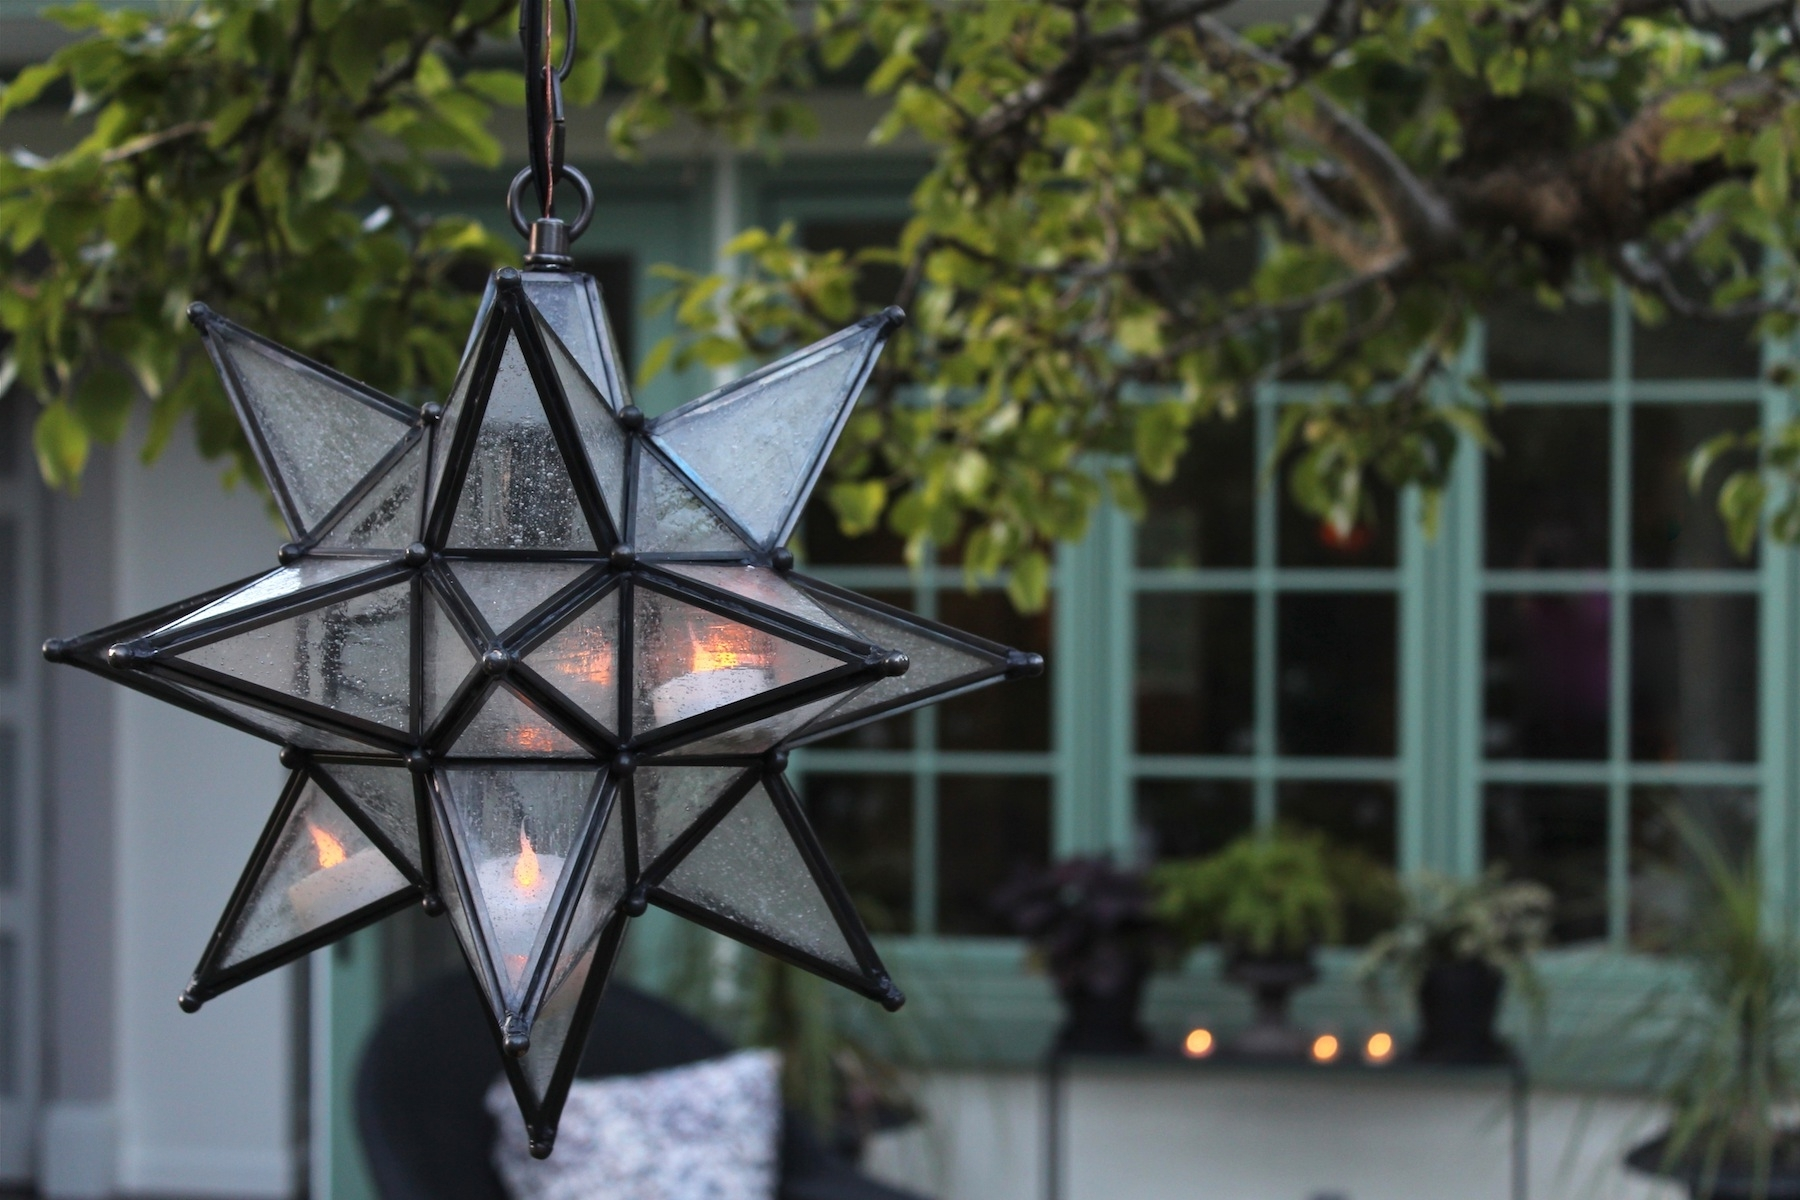 Timedlive Regarding Outdoor Hanging Lanterns With Battery Operated (View 16 of 20)